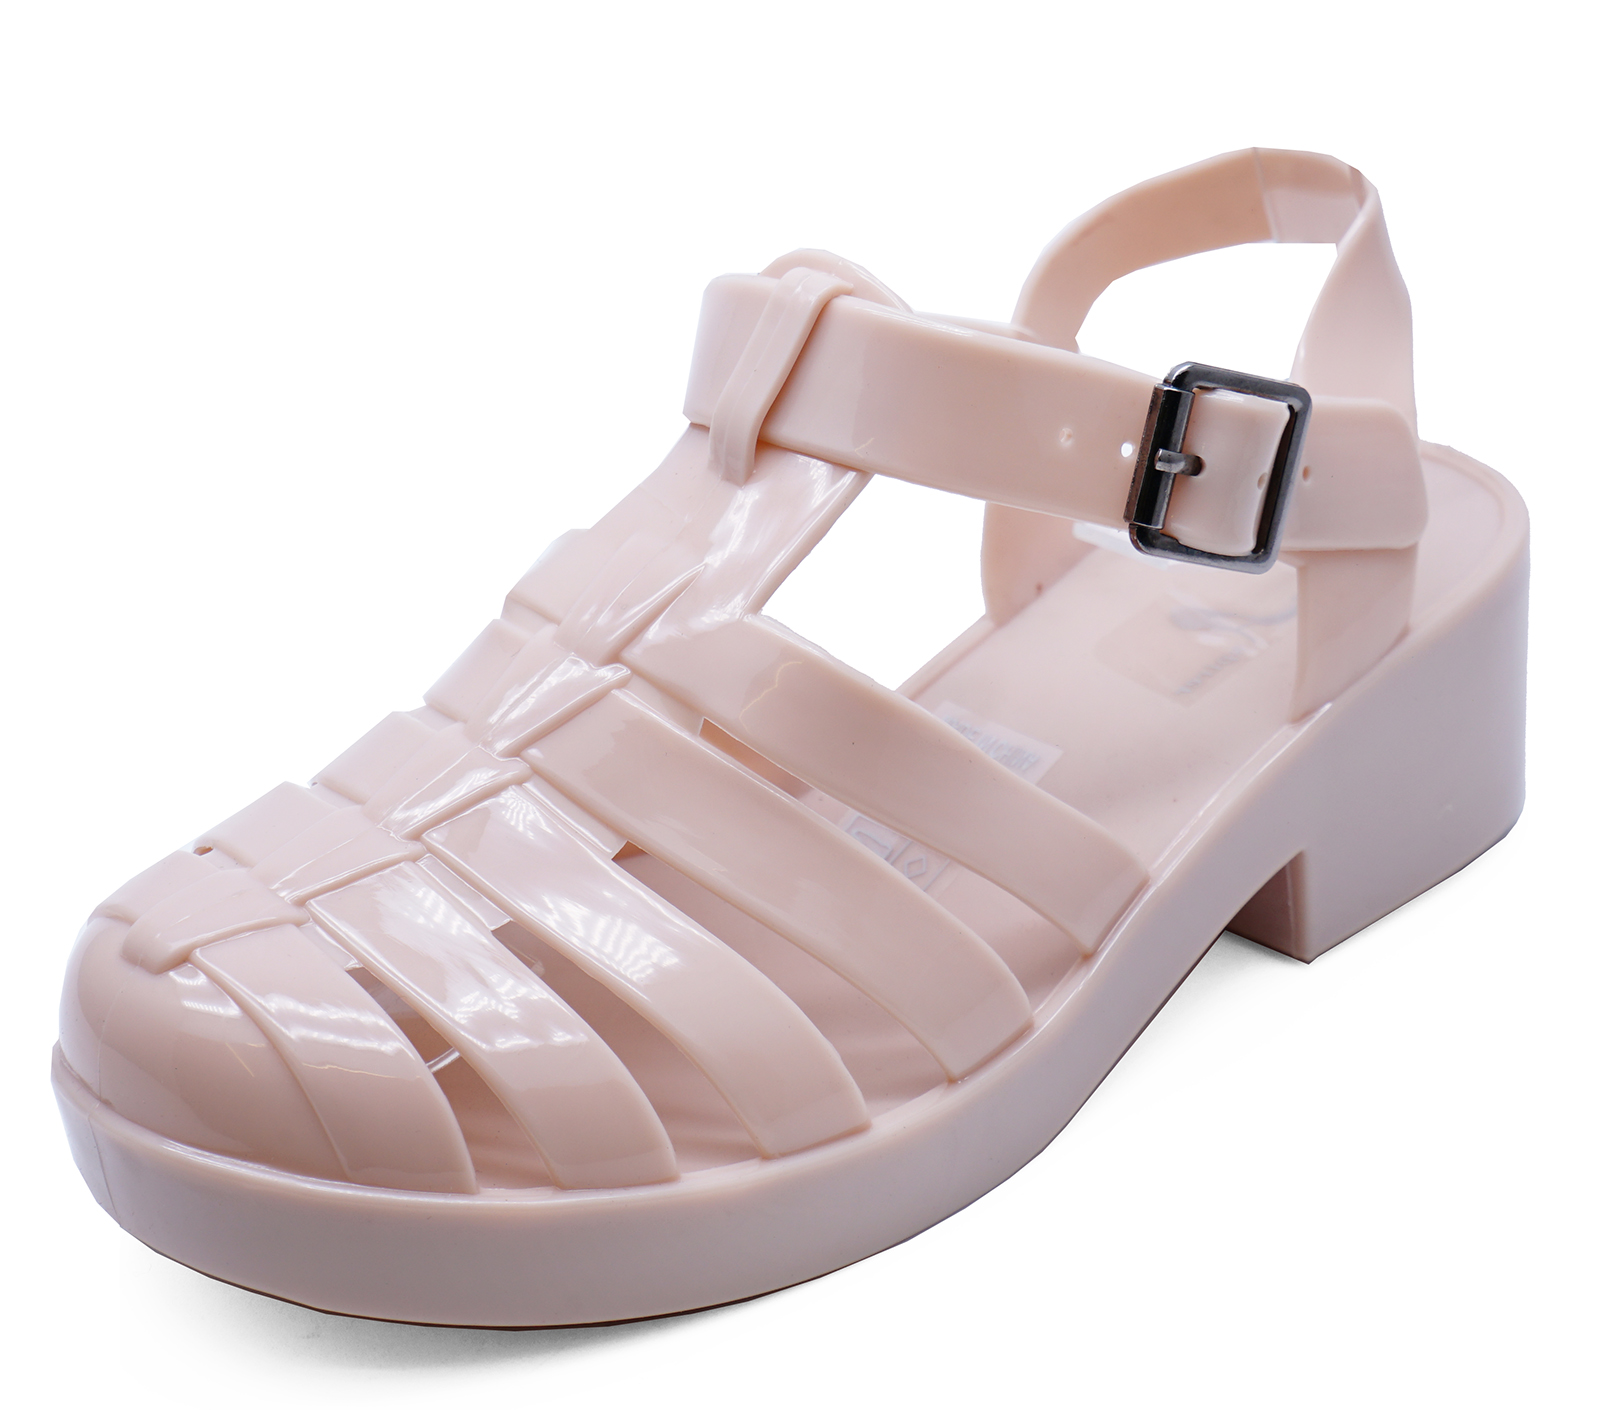 642c94e3ee0 Sentinel GIRLS KIDS NUDE JELLY GLADIATOR SANDALS BEACH HOLIDAY CUTE CHILDRENS  SHOES 11-3